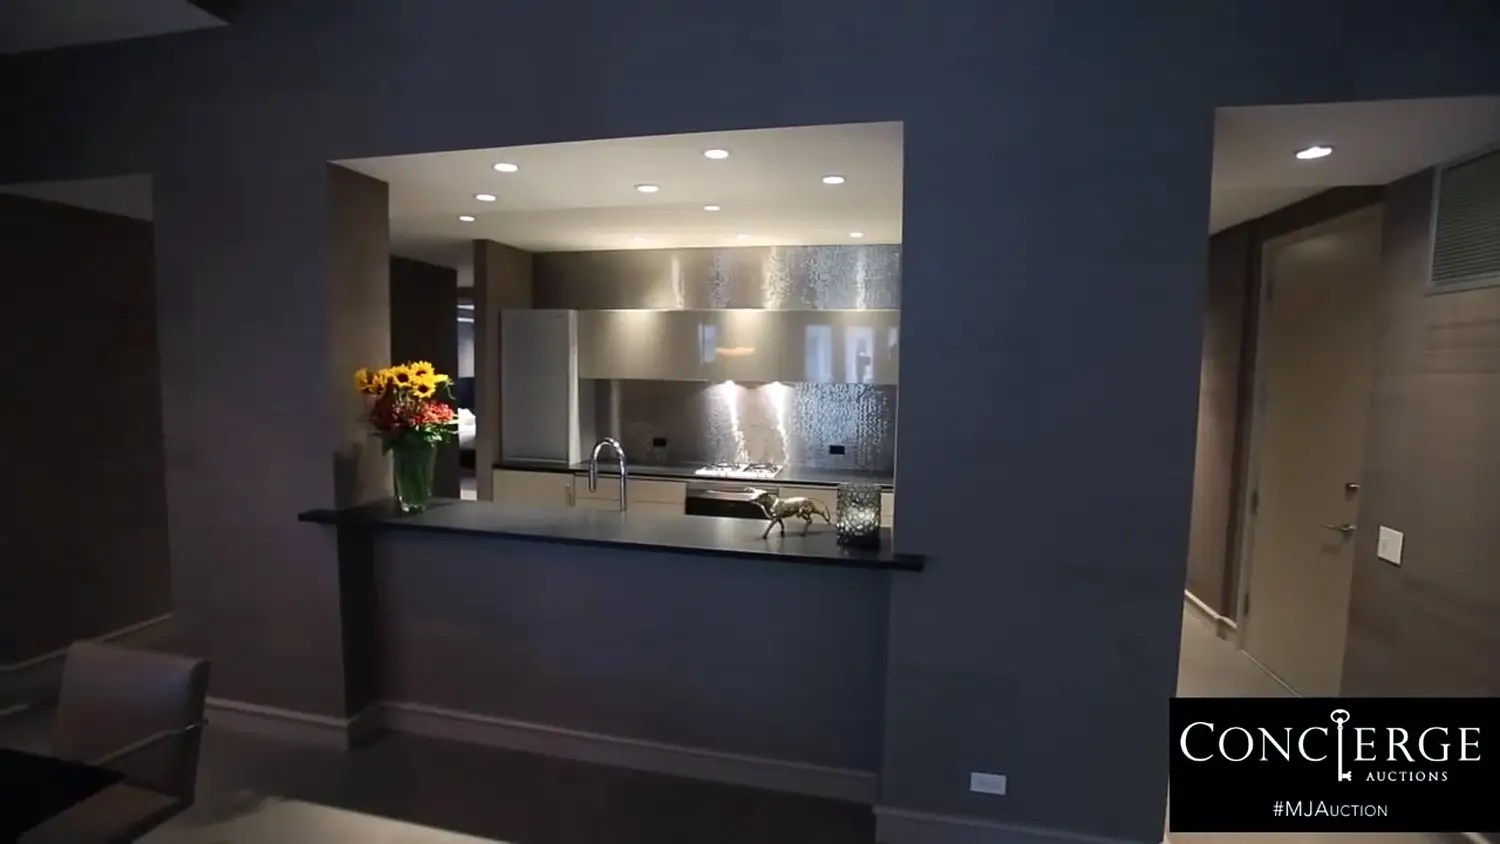 The guest house kitchen.